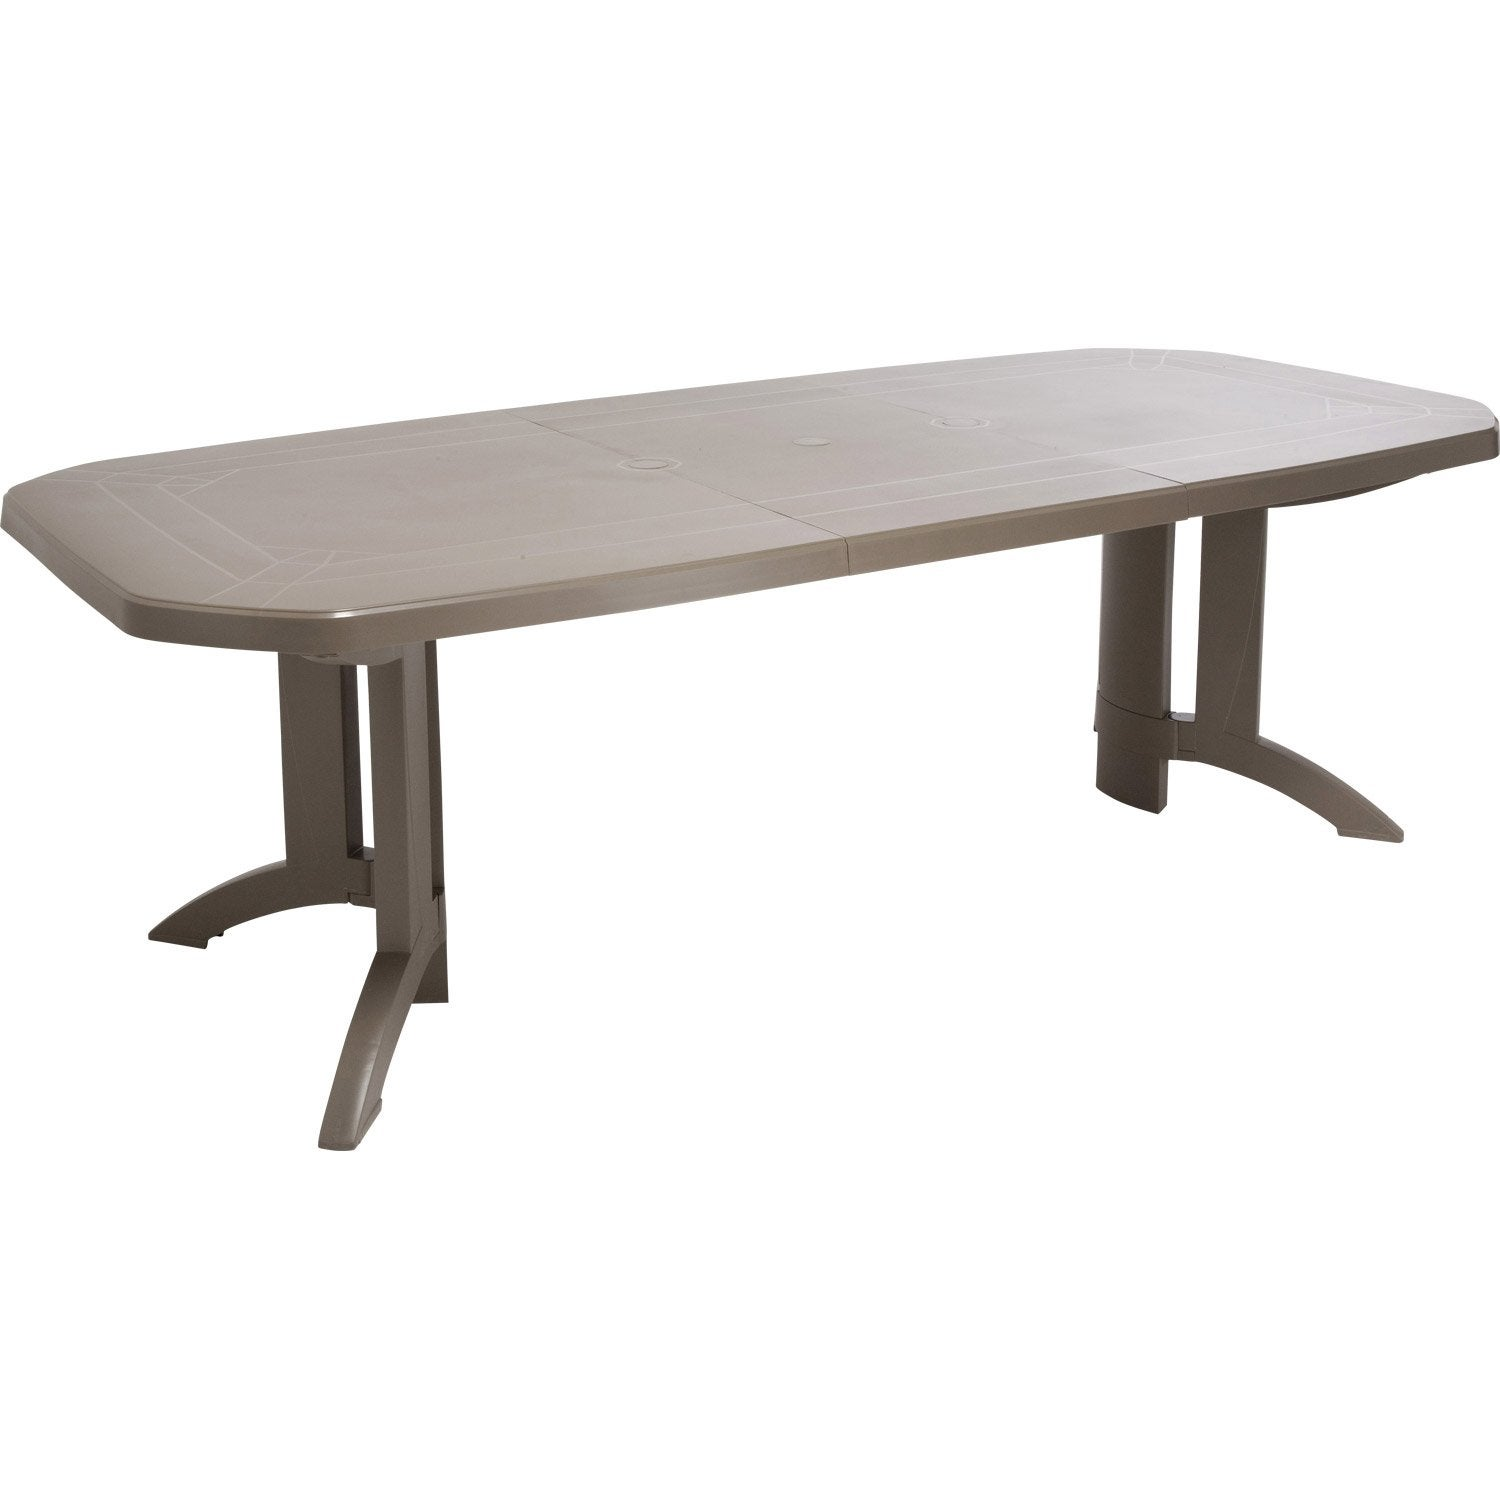 Table de jardin grosfillex v ga rectangulaire taupe 10 for Table 8 10 personnes